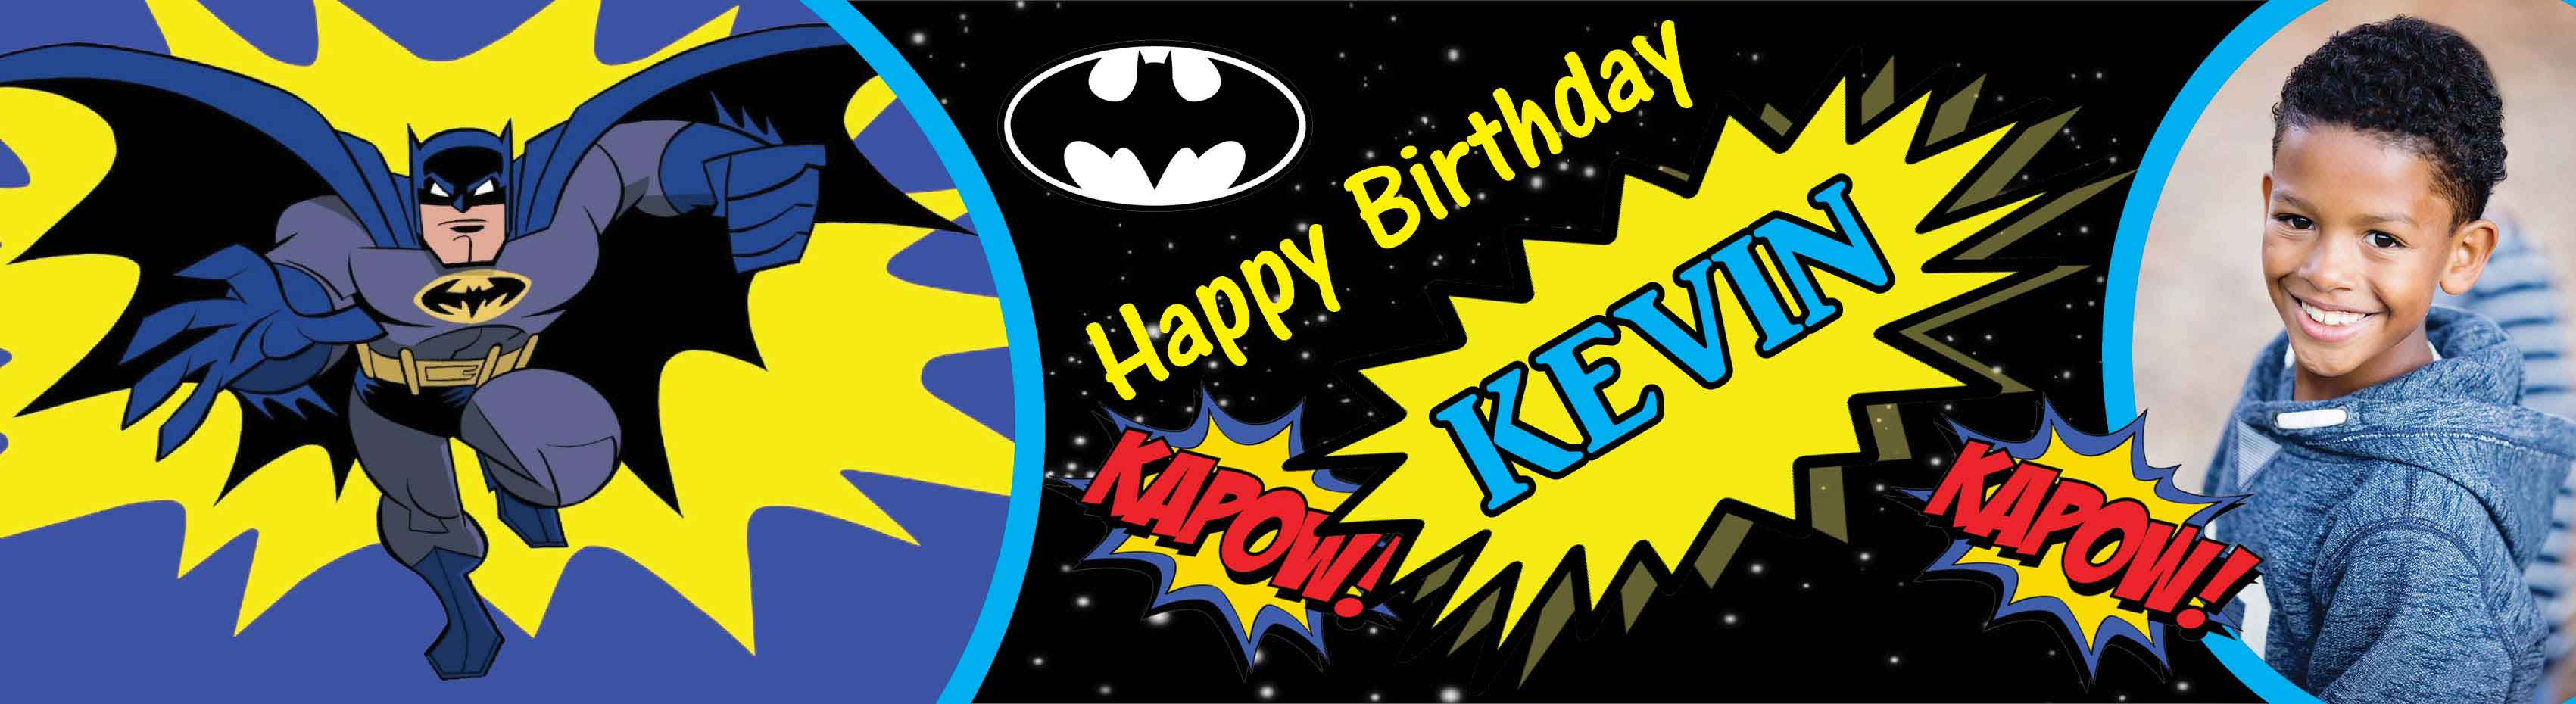 Batman Themed Birthday Party Banner 2